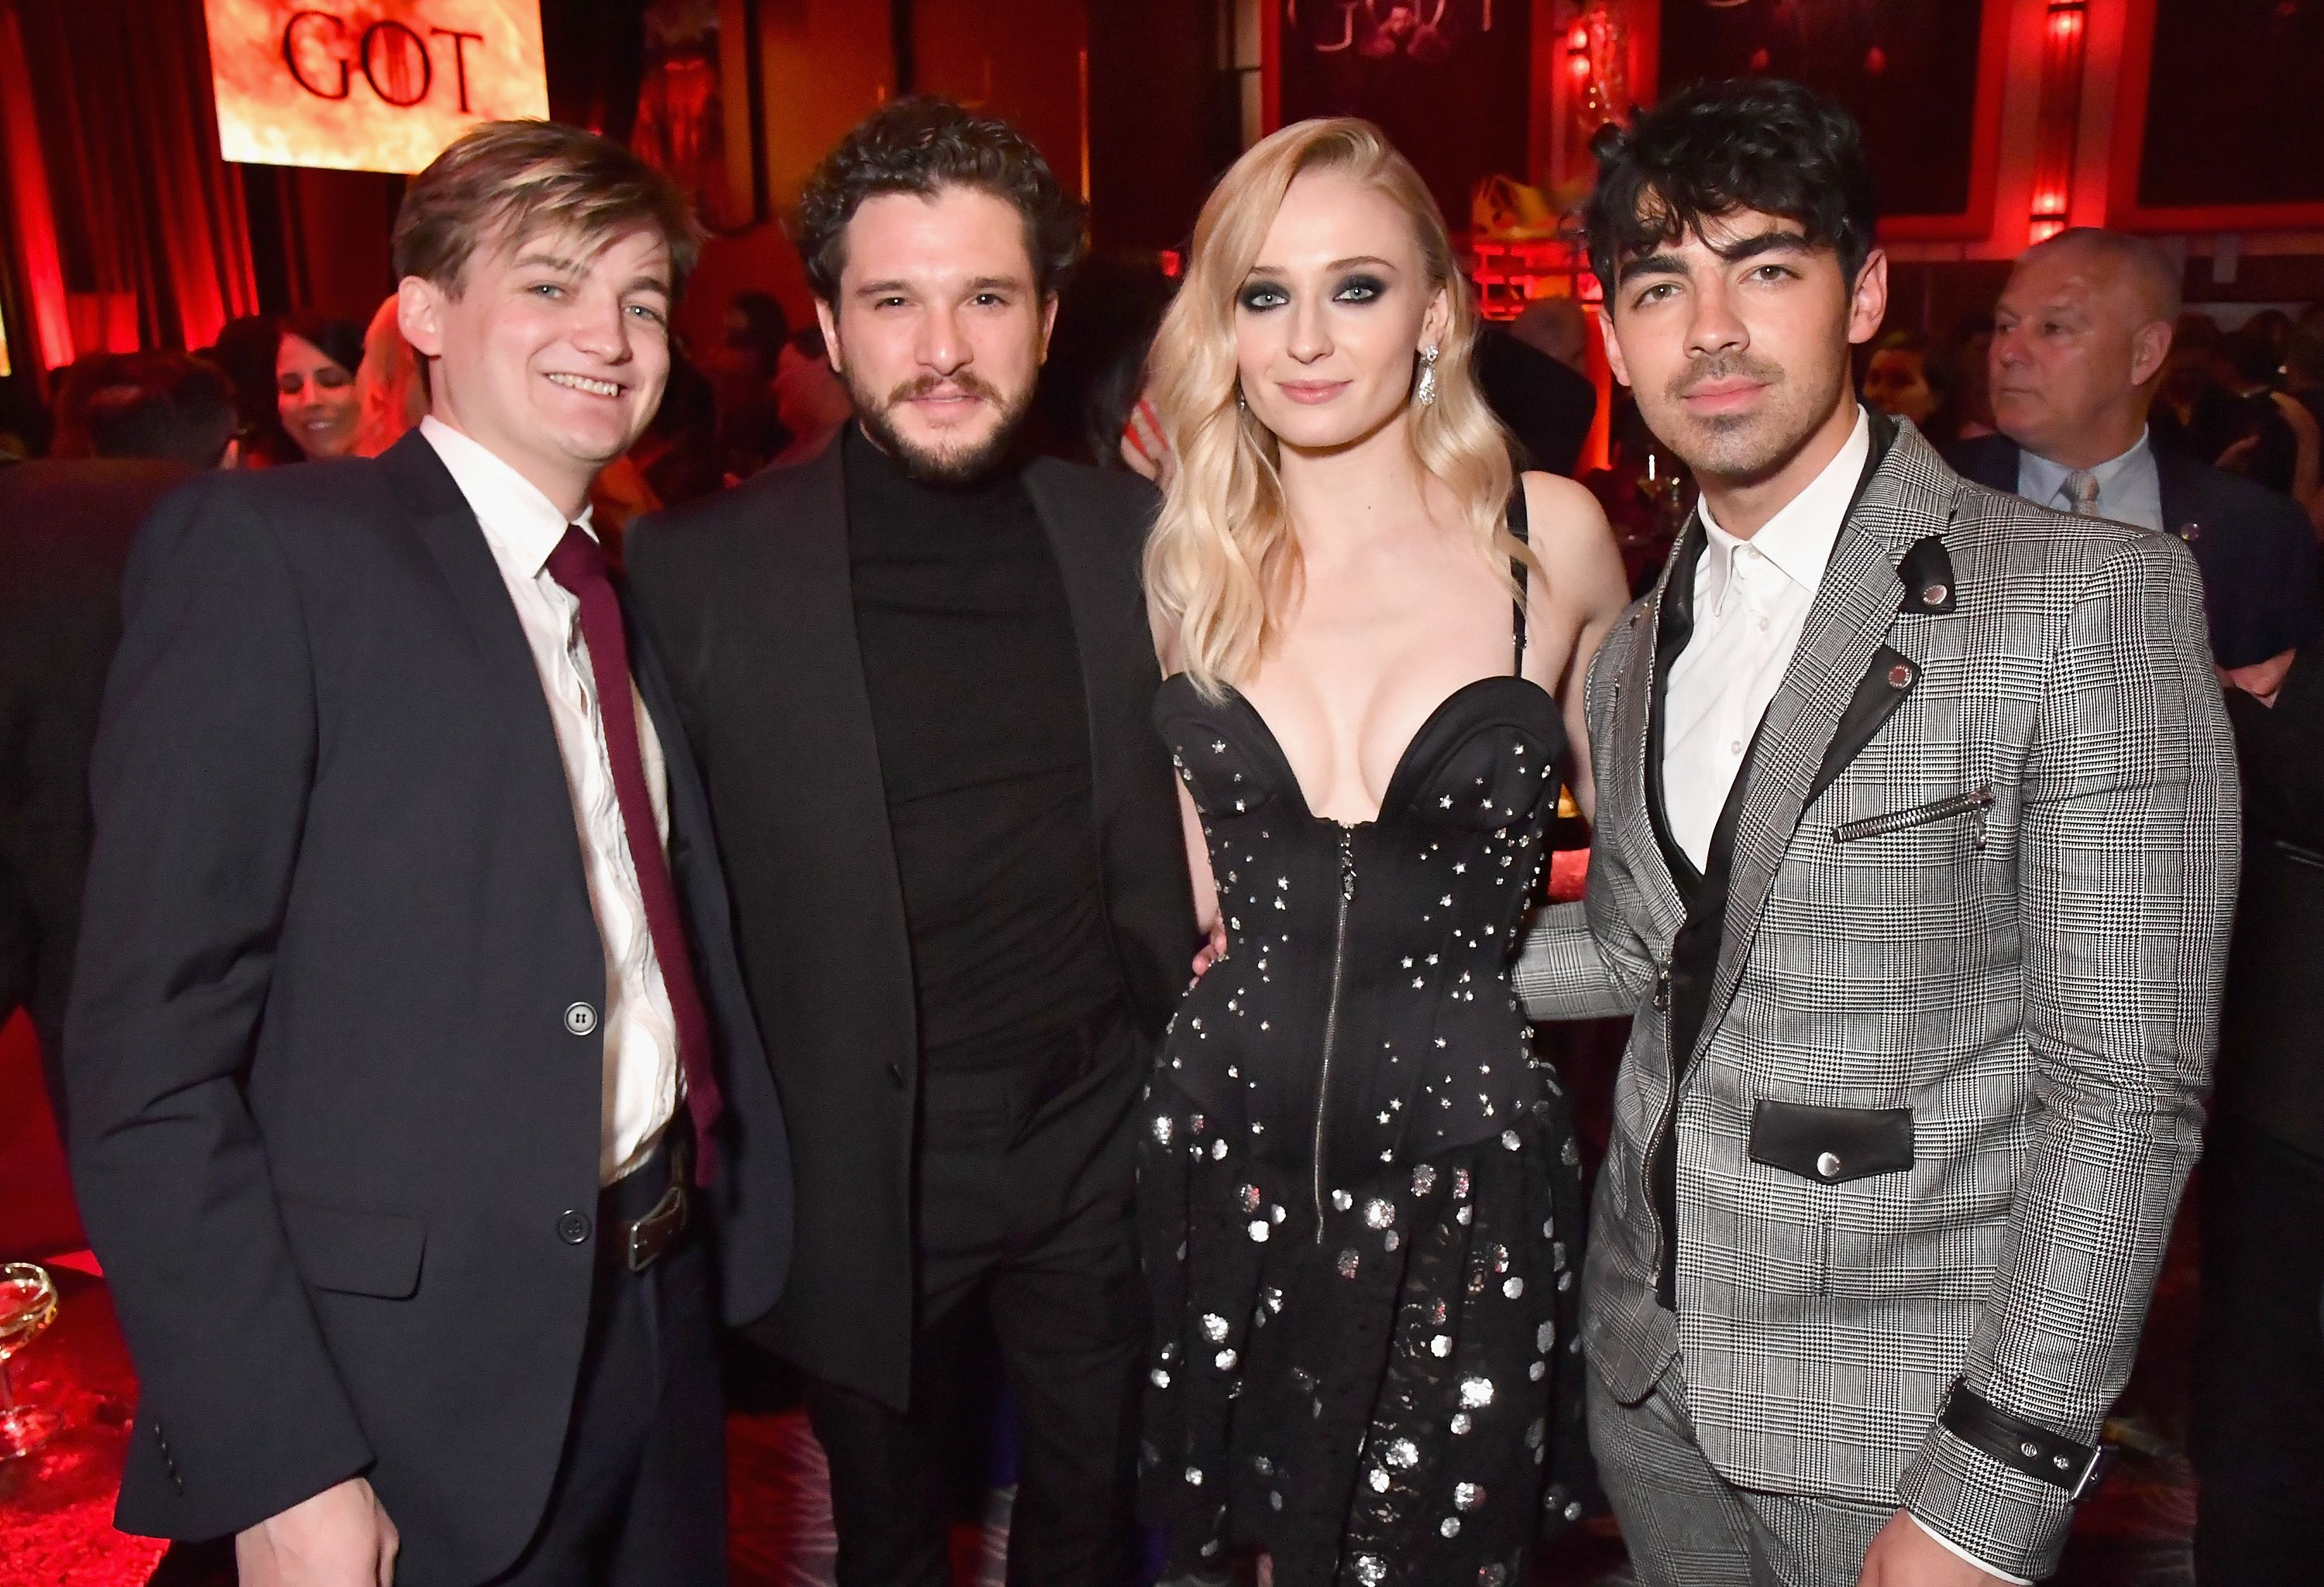 Sophie Turner Addresses Kit Harington Making More Money Than She Does on 'Game of Thrones'